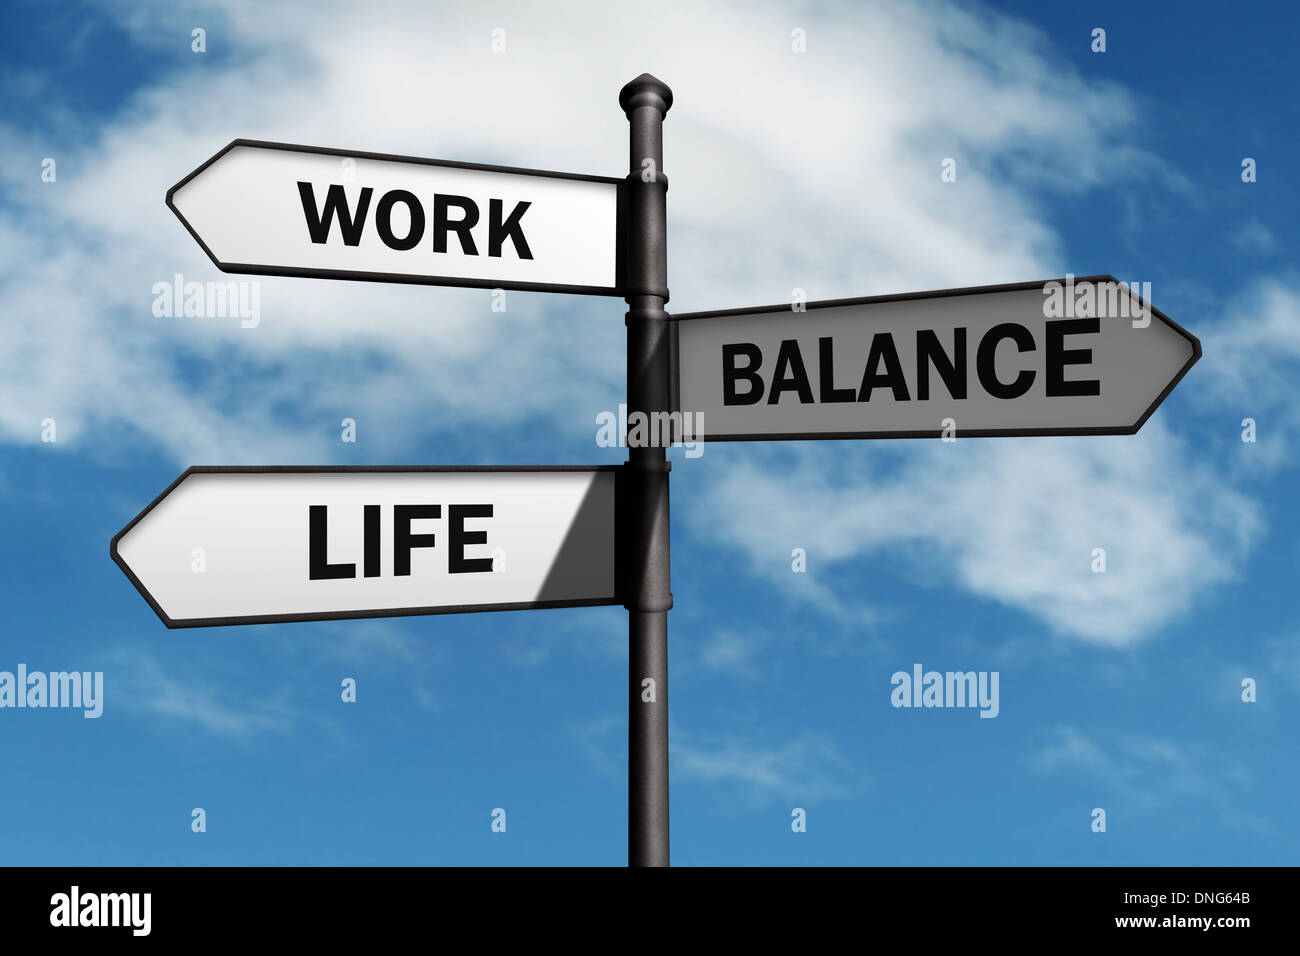 Work life balance choices - Stock Image